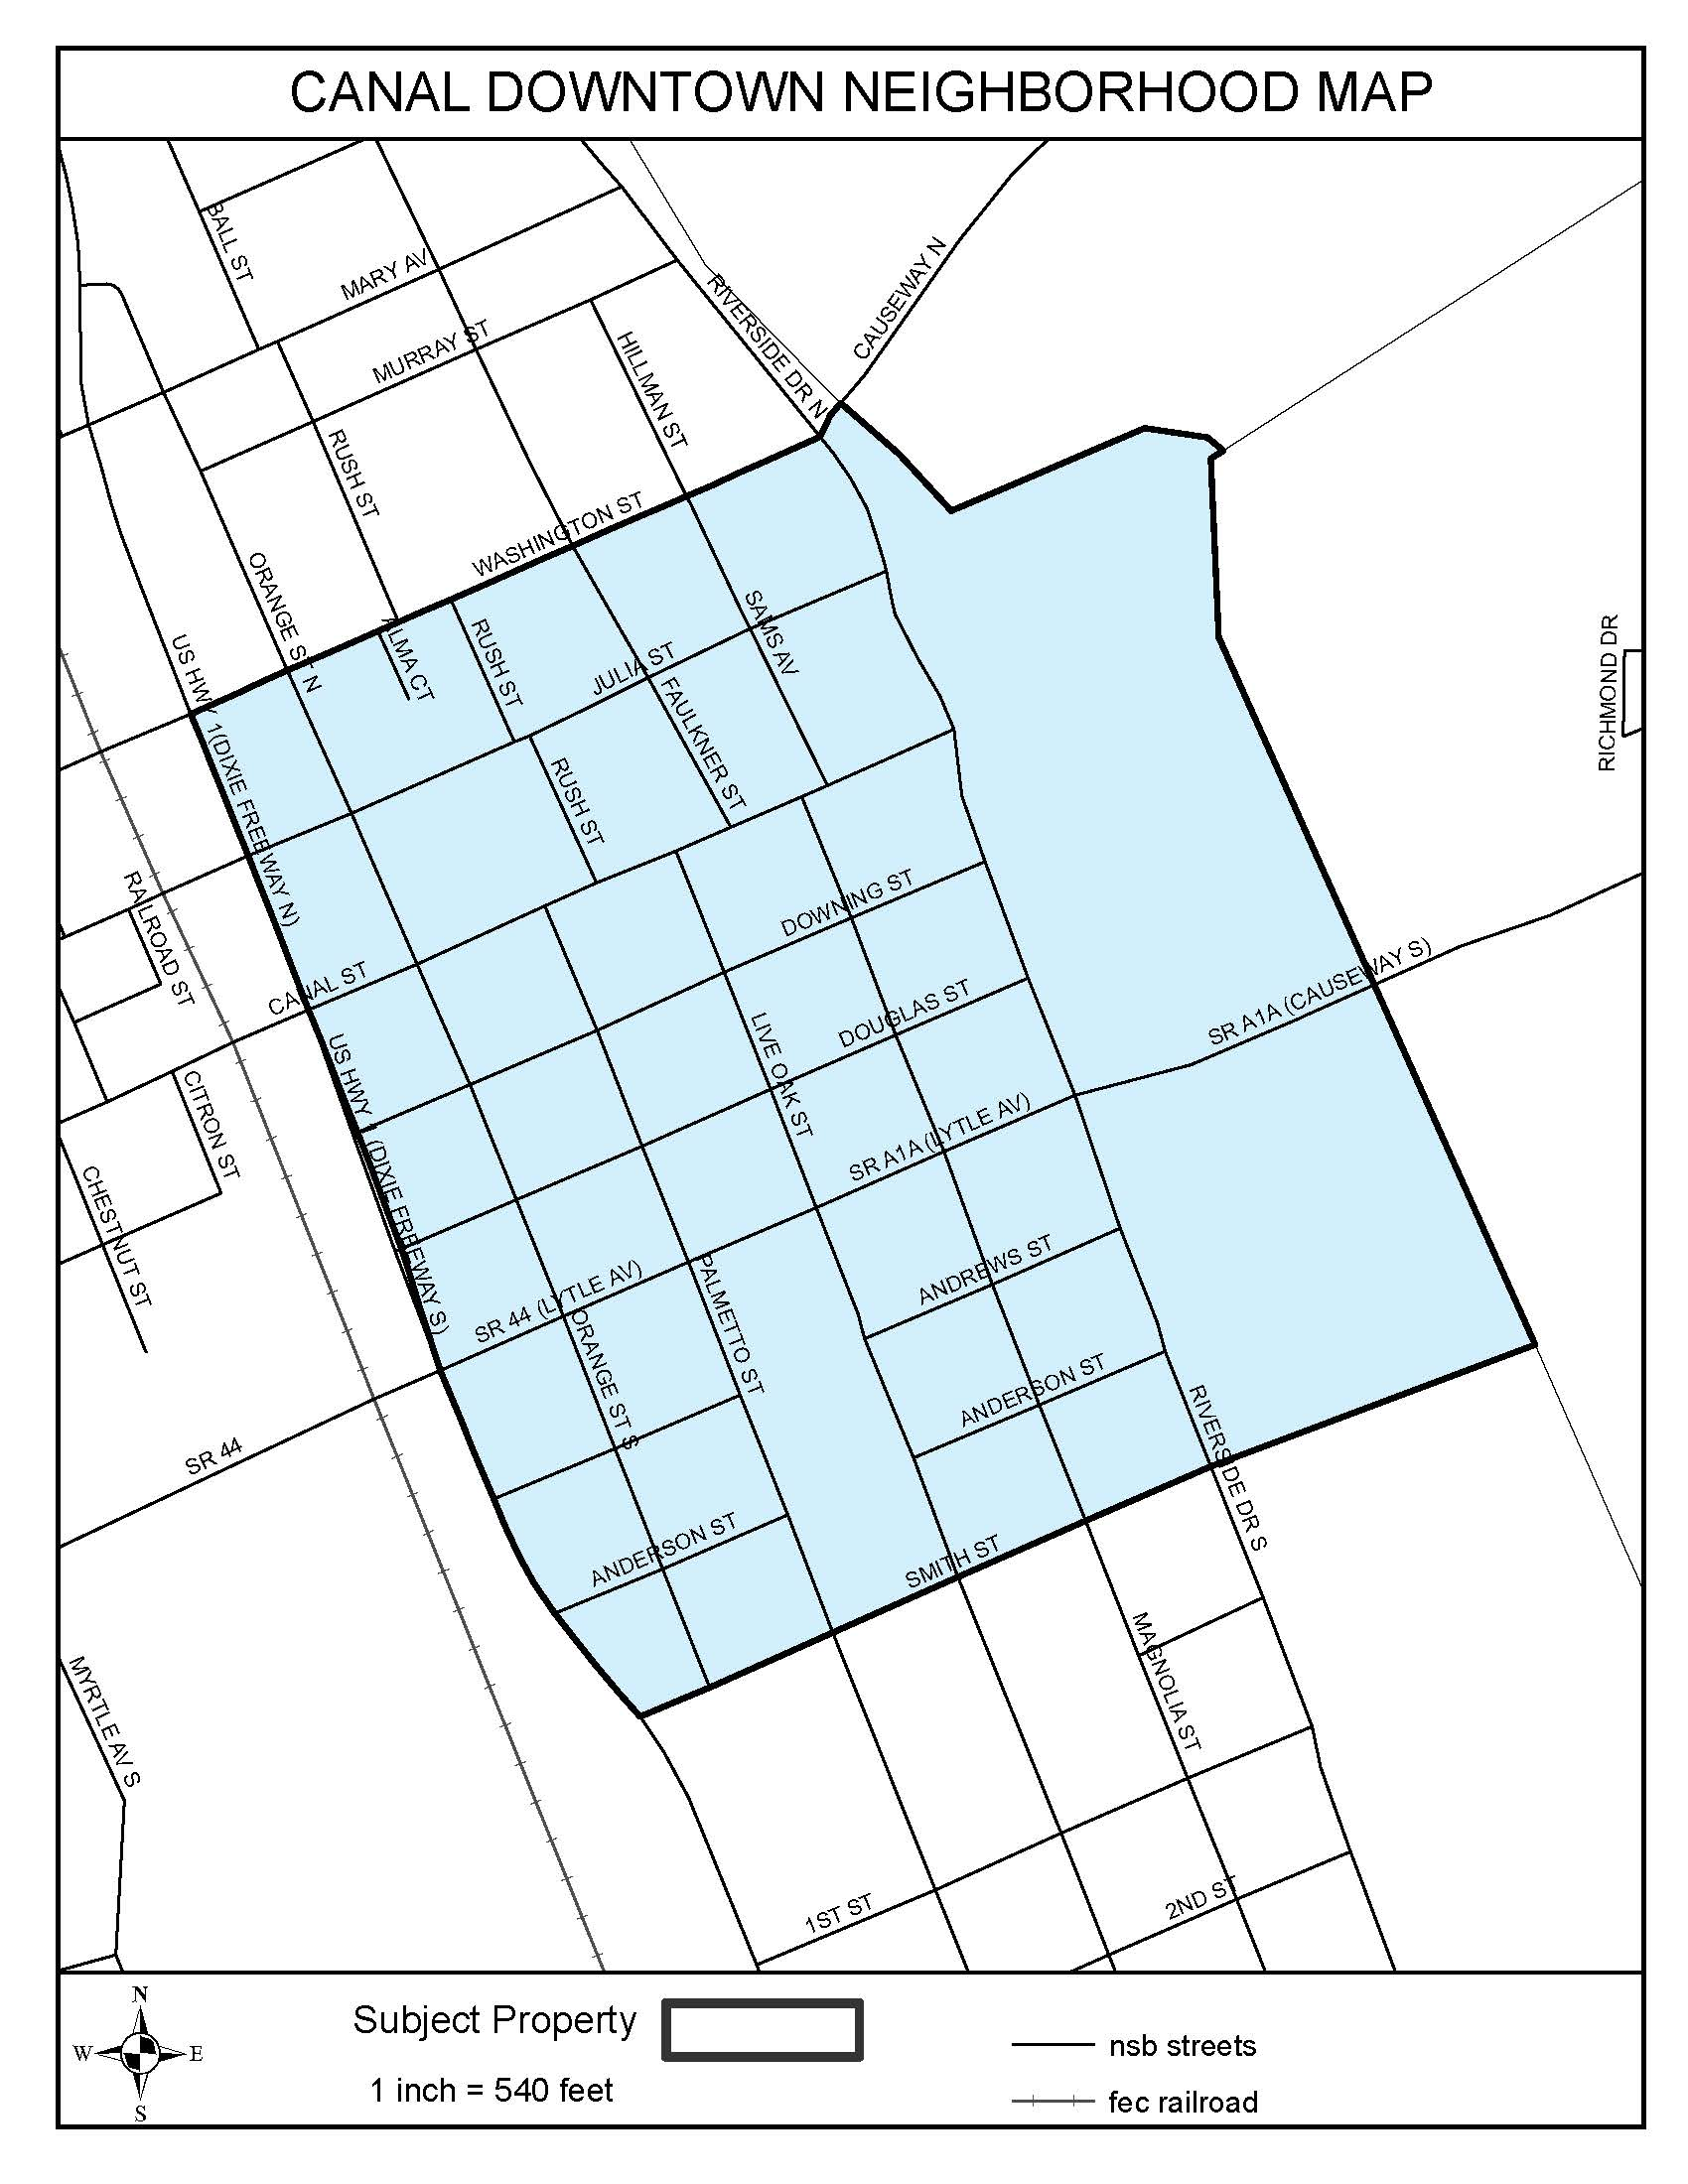 Canal Downtown Neighborhood Location Map.jpg